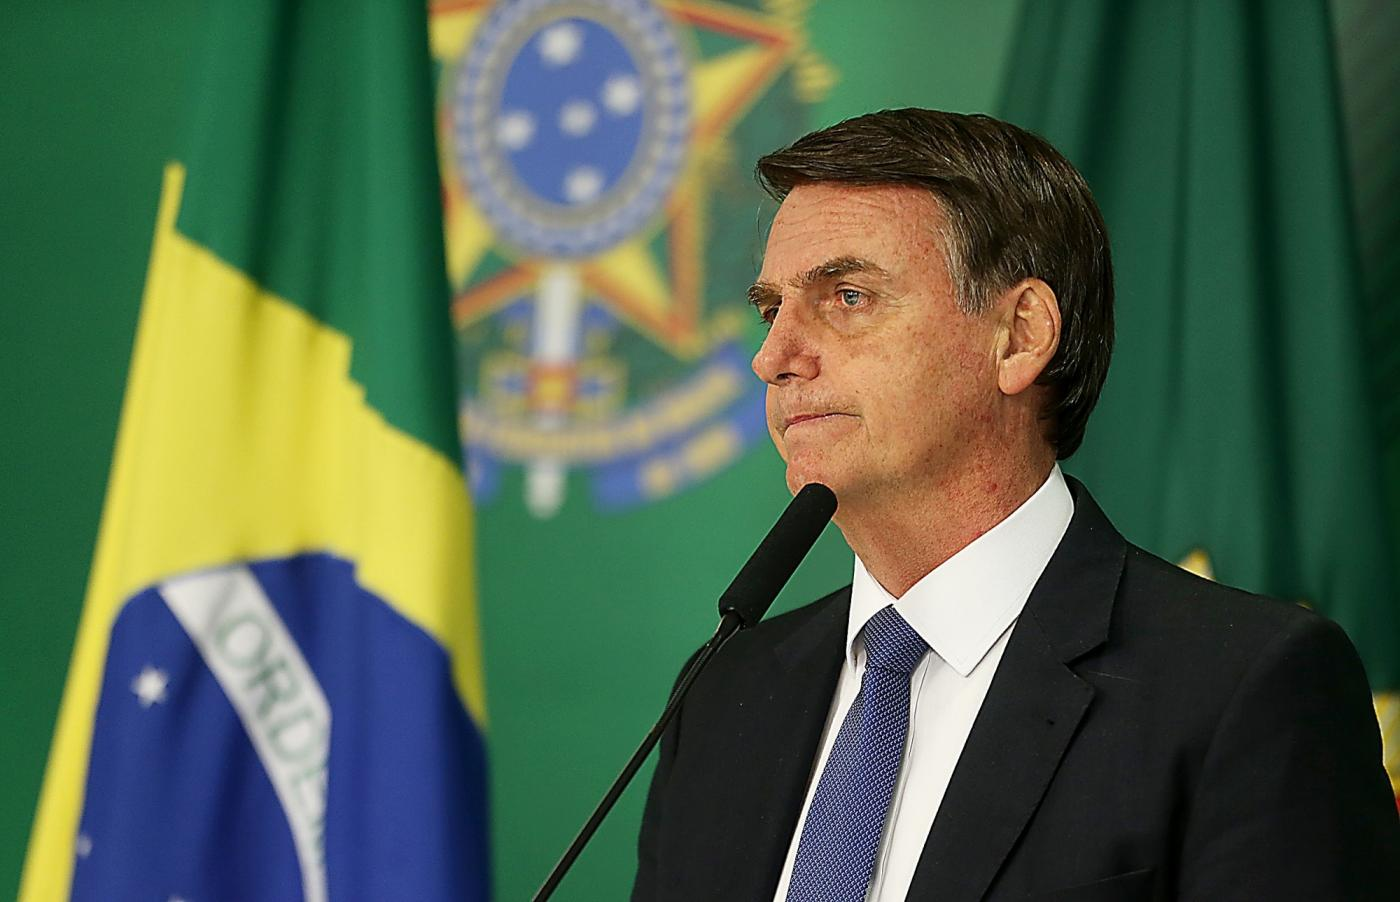 BRASILIA, Jan. 26, 2019 (Xinhua) -- Brazil's President Jair Bolsonaro attends a press conference on the collapse of a dam, at Planalto Palace, in Brasilia, capital of Brazil, on Jan. 25, 2019. At least seven people were killed, nine injured and at least 150 others are missing after a tailings dam collapsed Friday afternoon in southeastern state of Minas Gerais, the state government said Friday evening. (Xinhua/Ernesto Rodrigues/AGENCIA ESTADO/IANS) by .